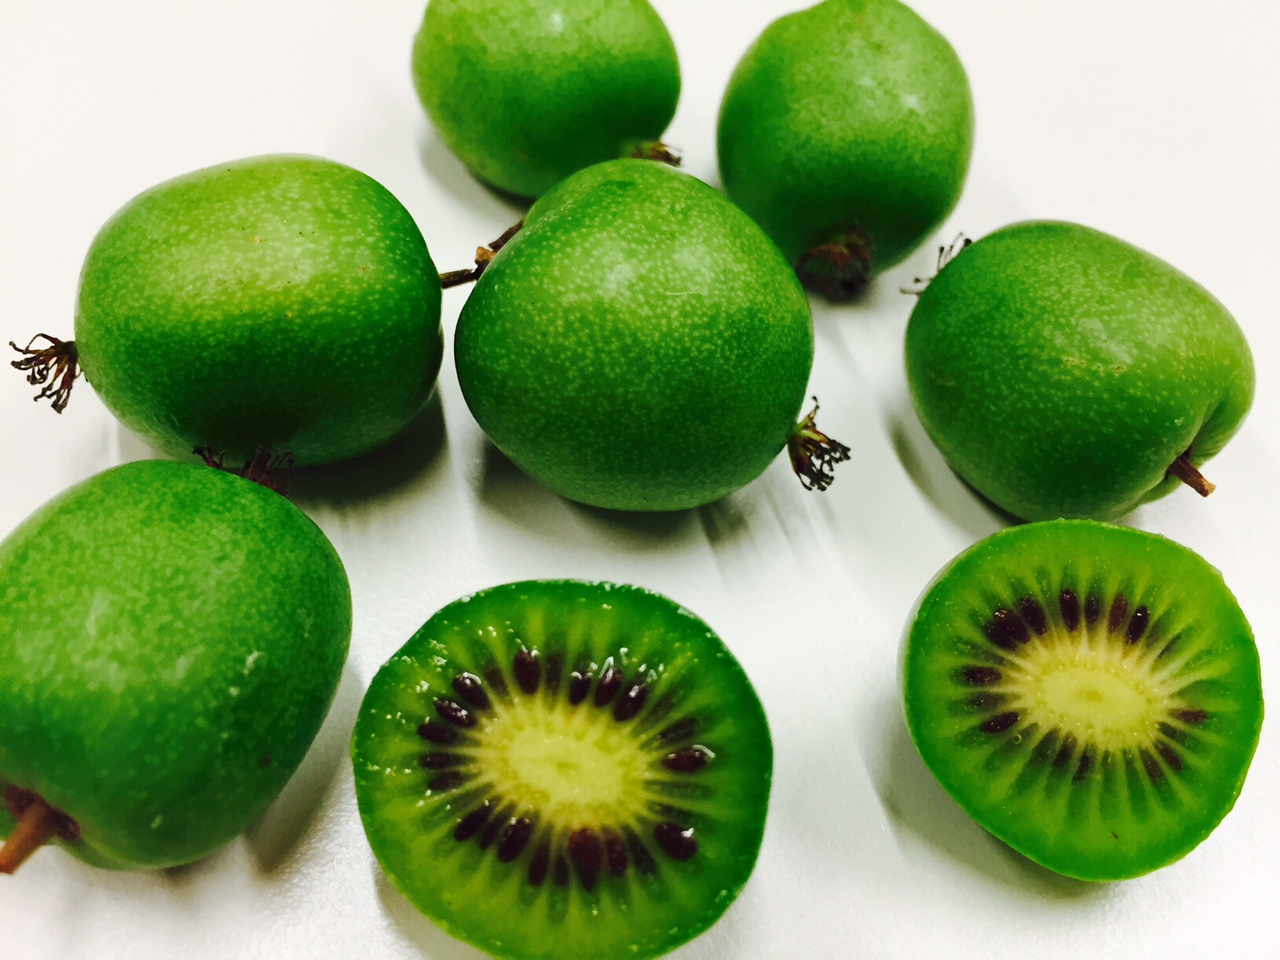 Thurgauer Mini Kiwis